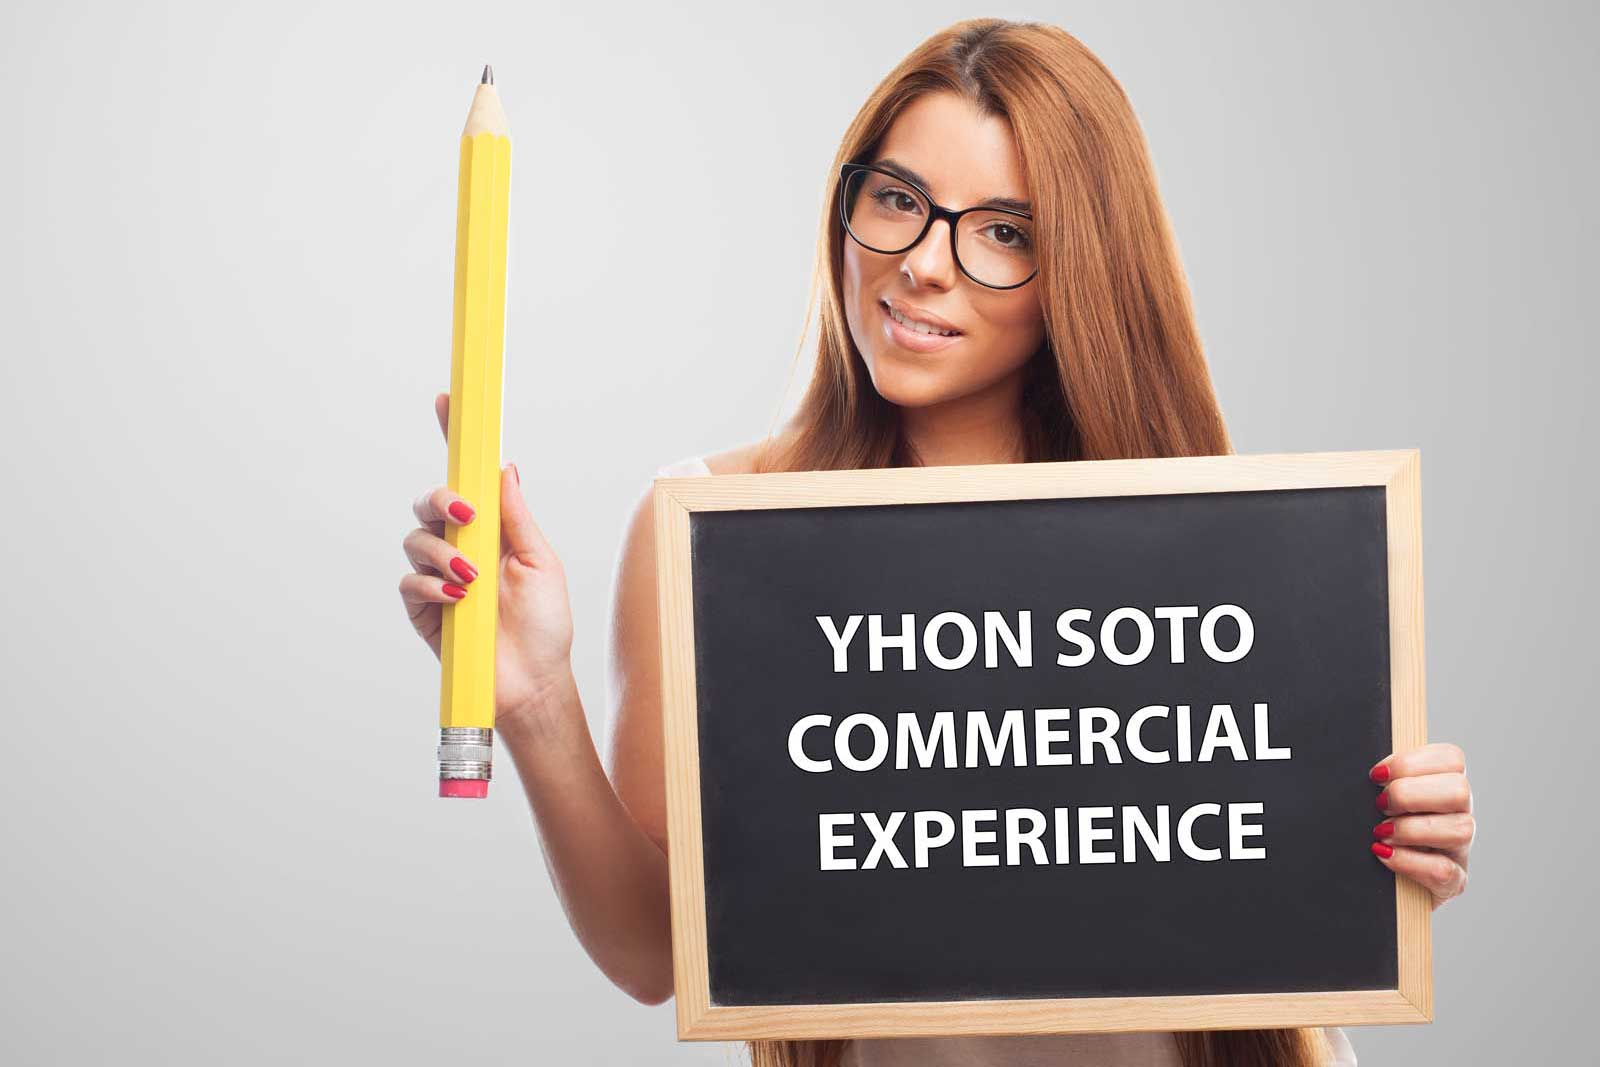 Commercial Experience By Yhon Soto